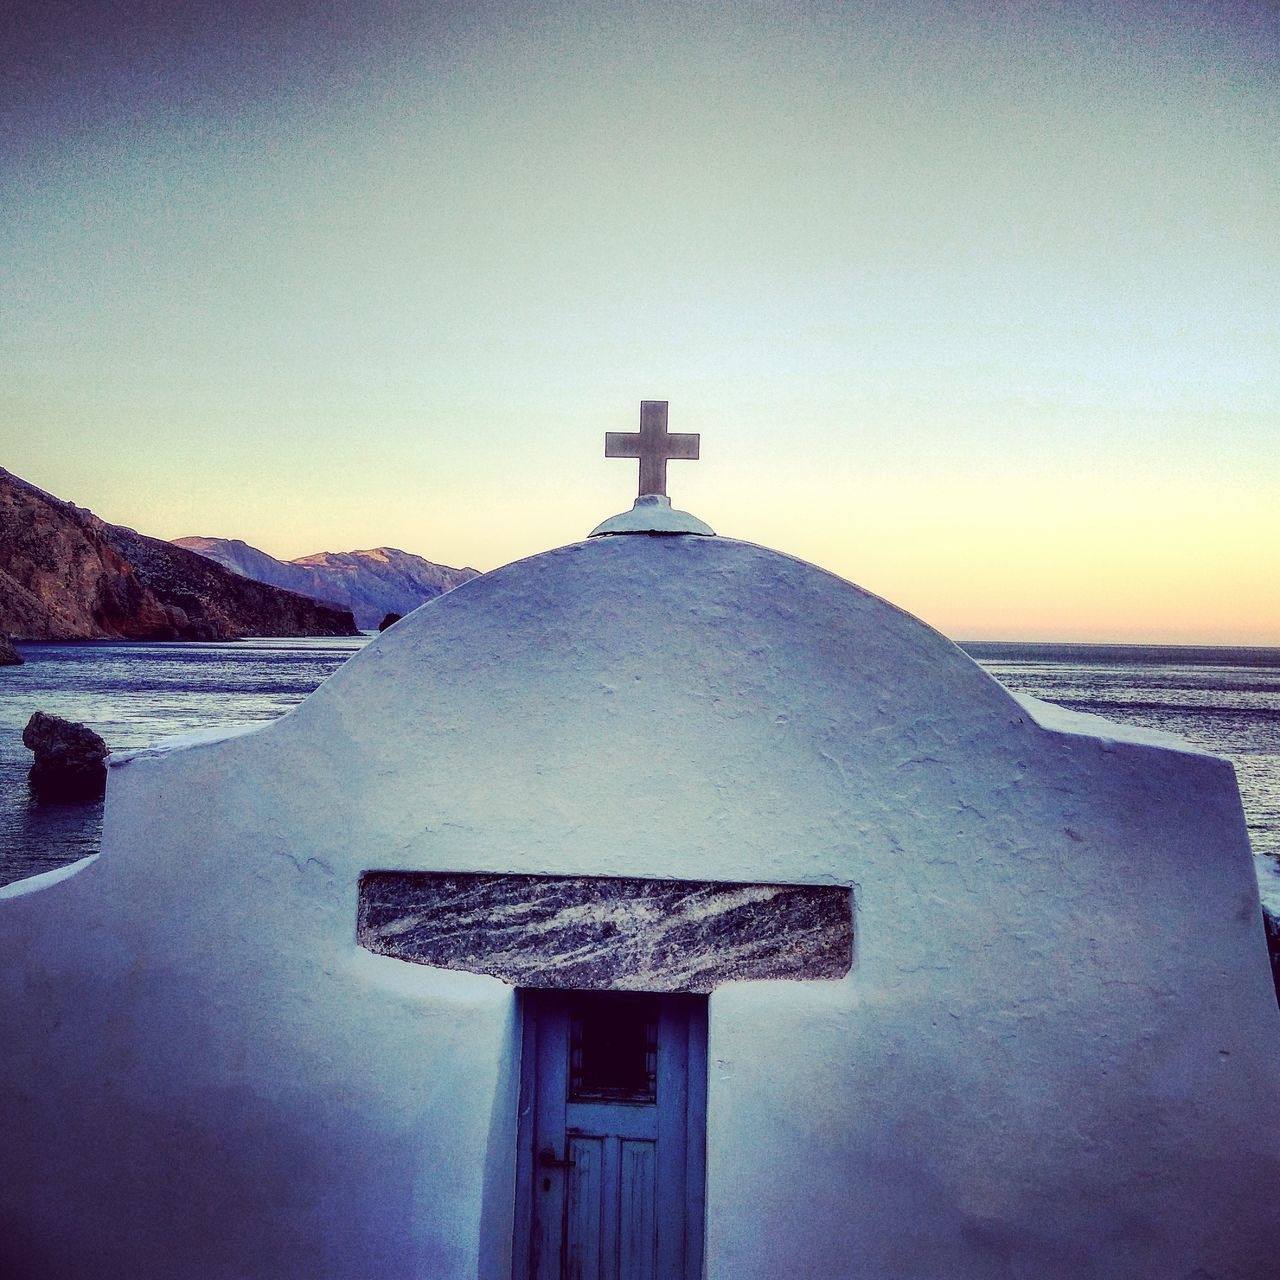 Agiaannaamorgos Amorgos Amorgosisland Sunset Chearch Sea Bleu Sky Sky Relegion Outdoors No People Architecture Nature Day Aegean Sea Vacations Beach Water